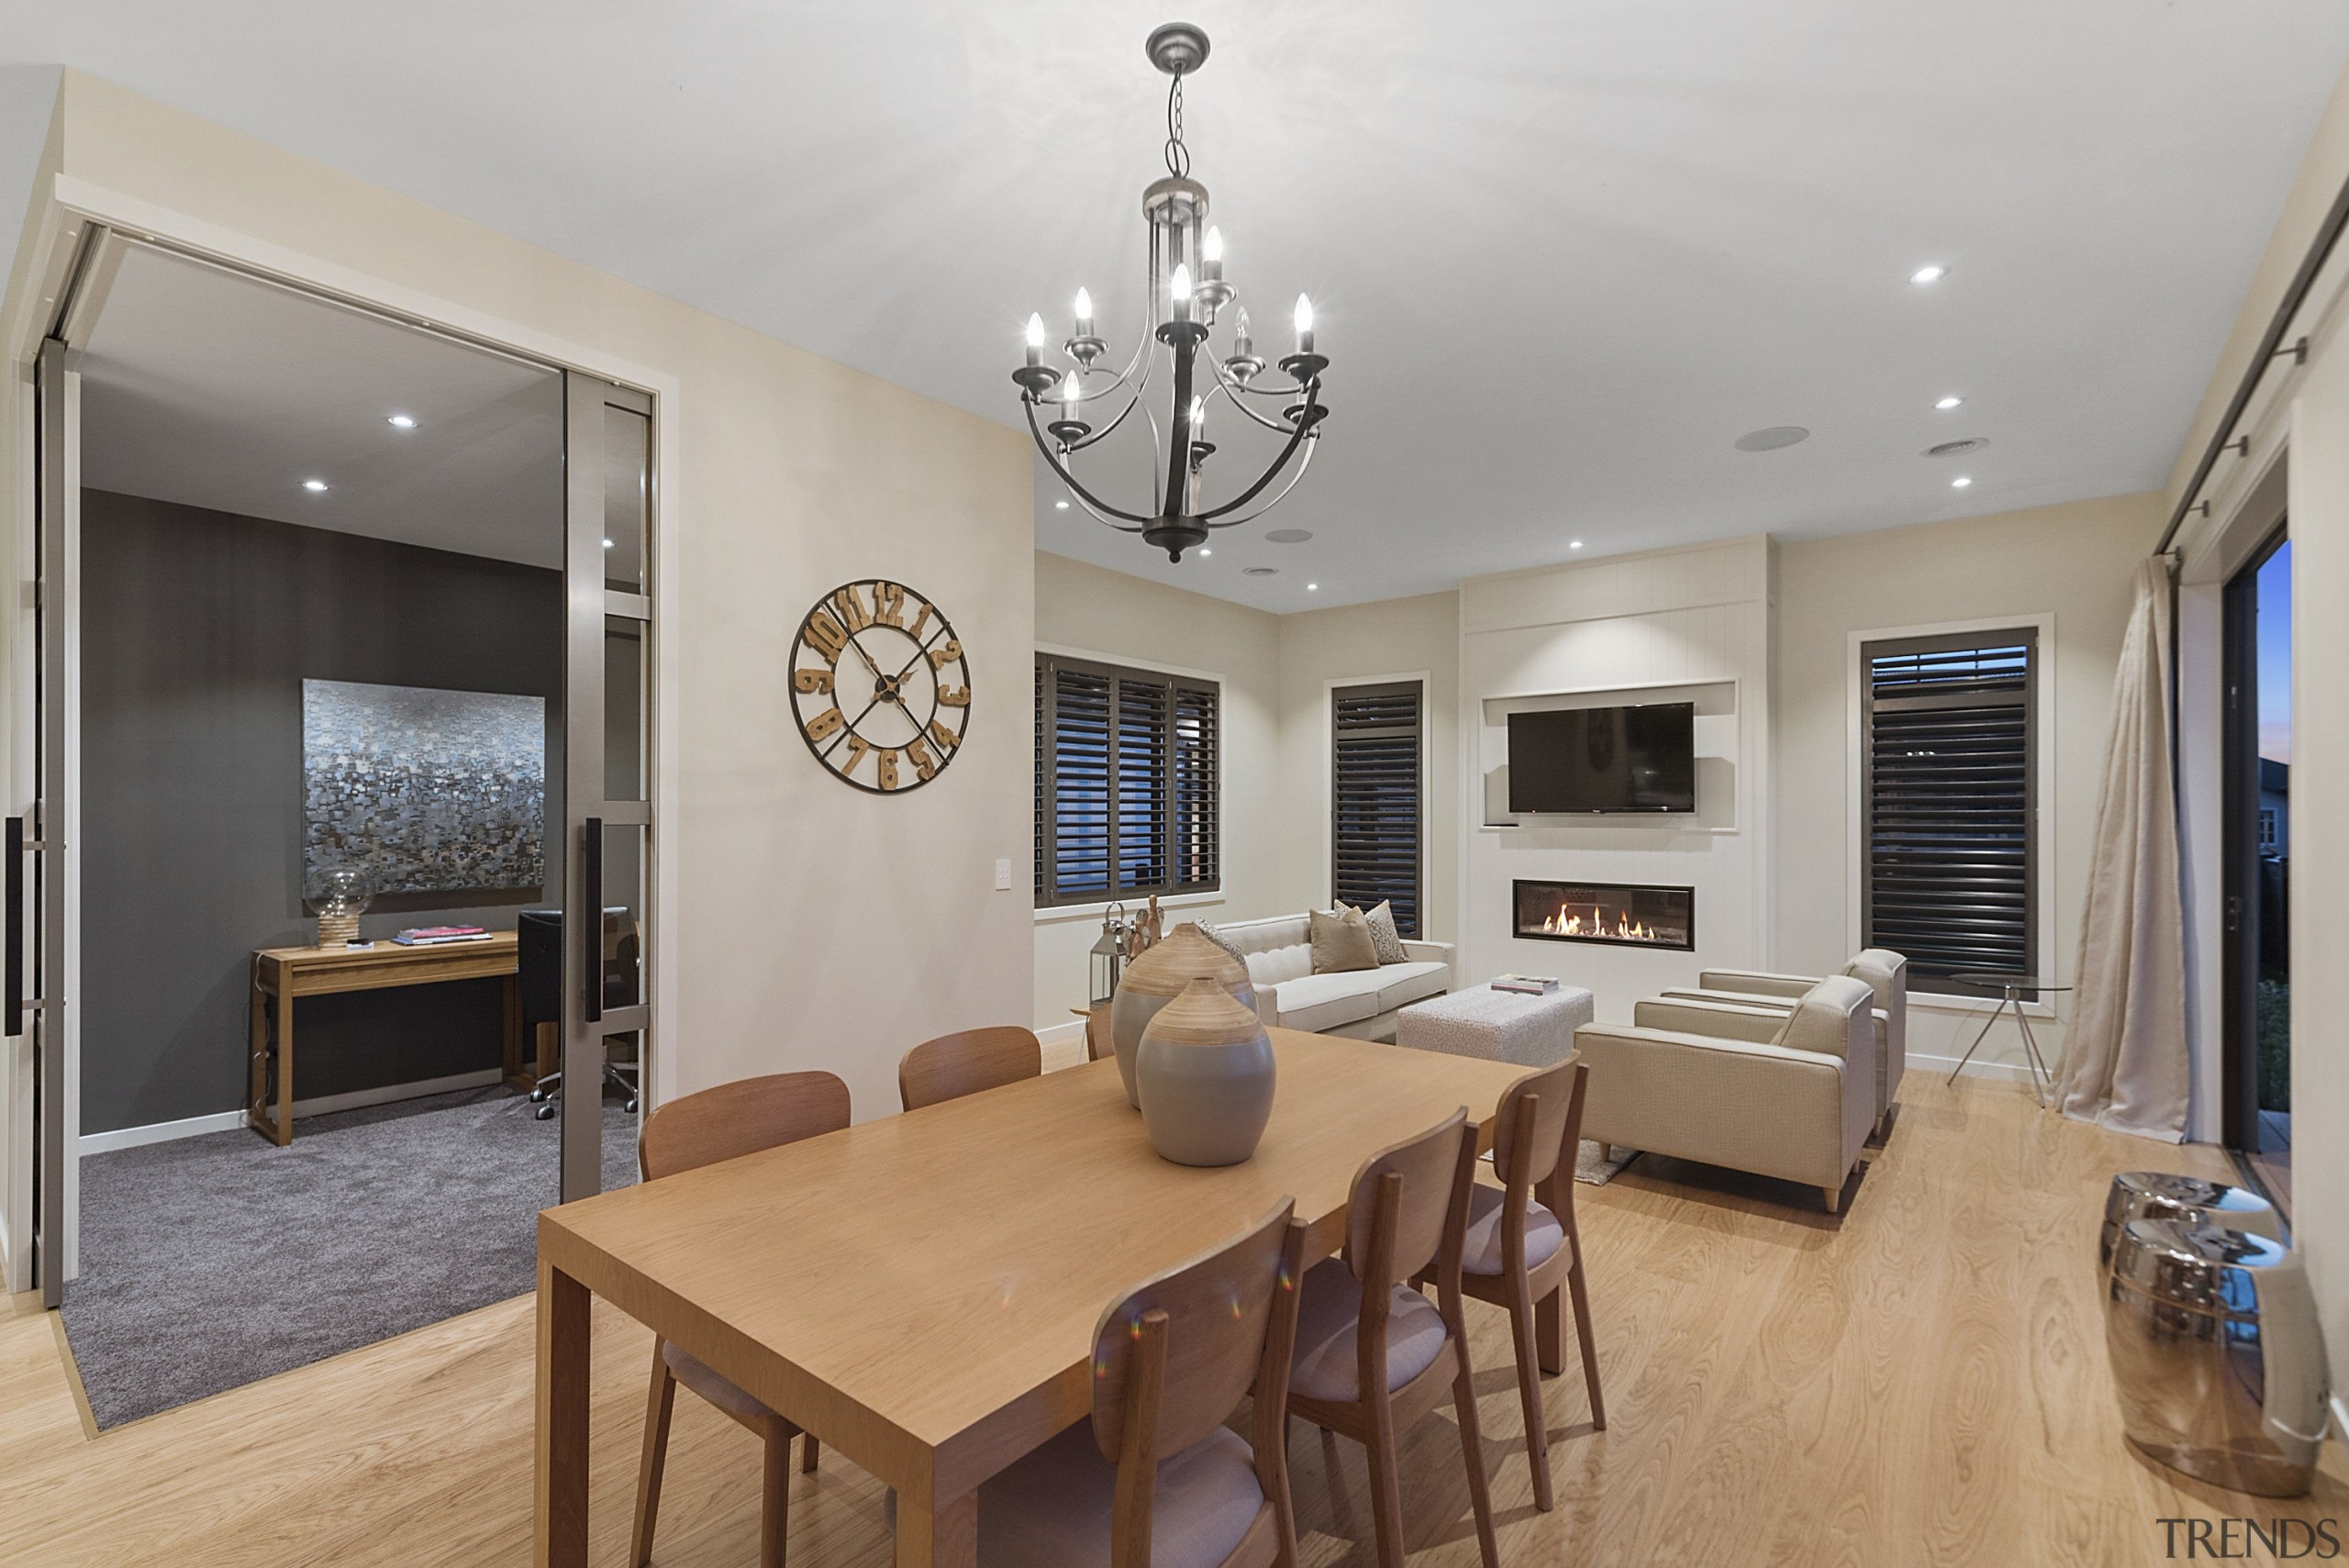 Natural wood floors feature in the living spaces ceiling, dining room, interior design, living room, property, real estate, room, gray